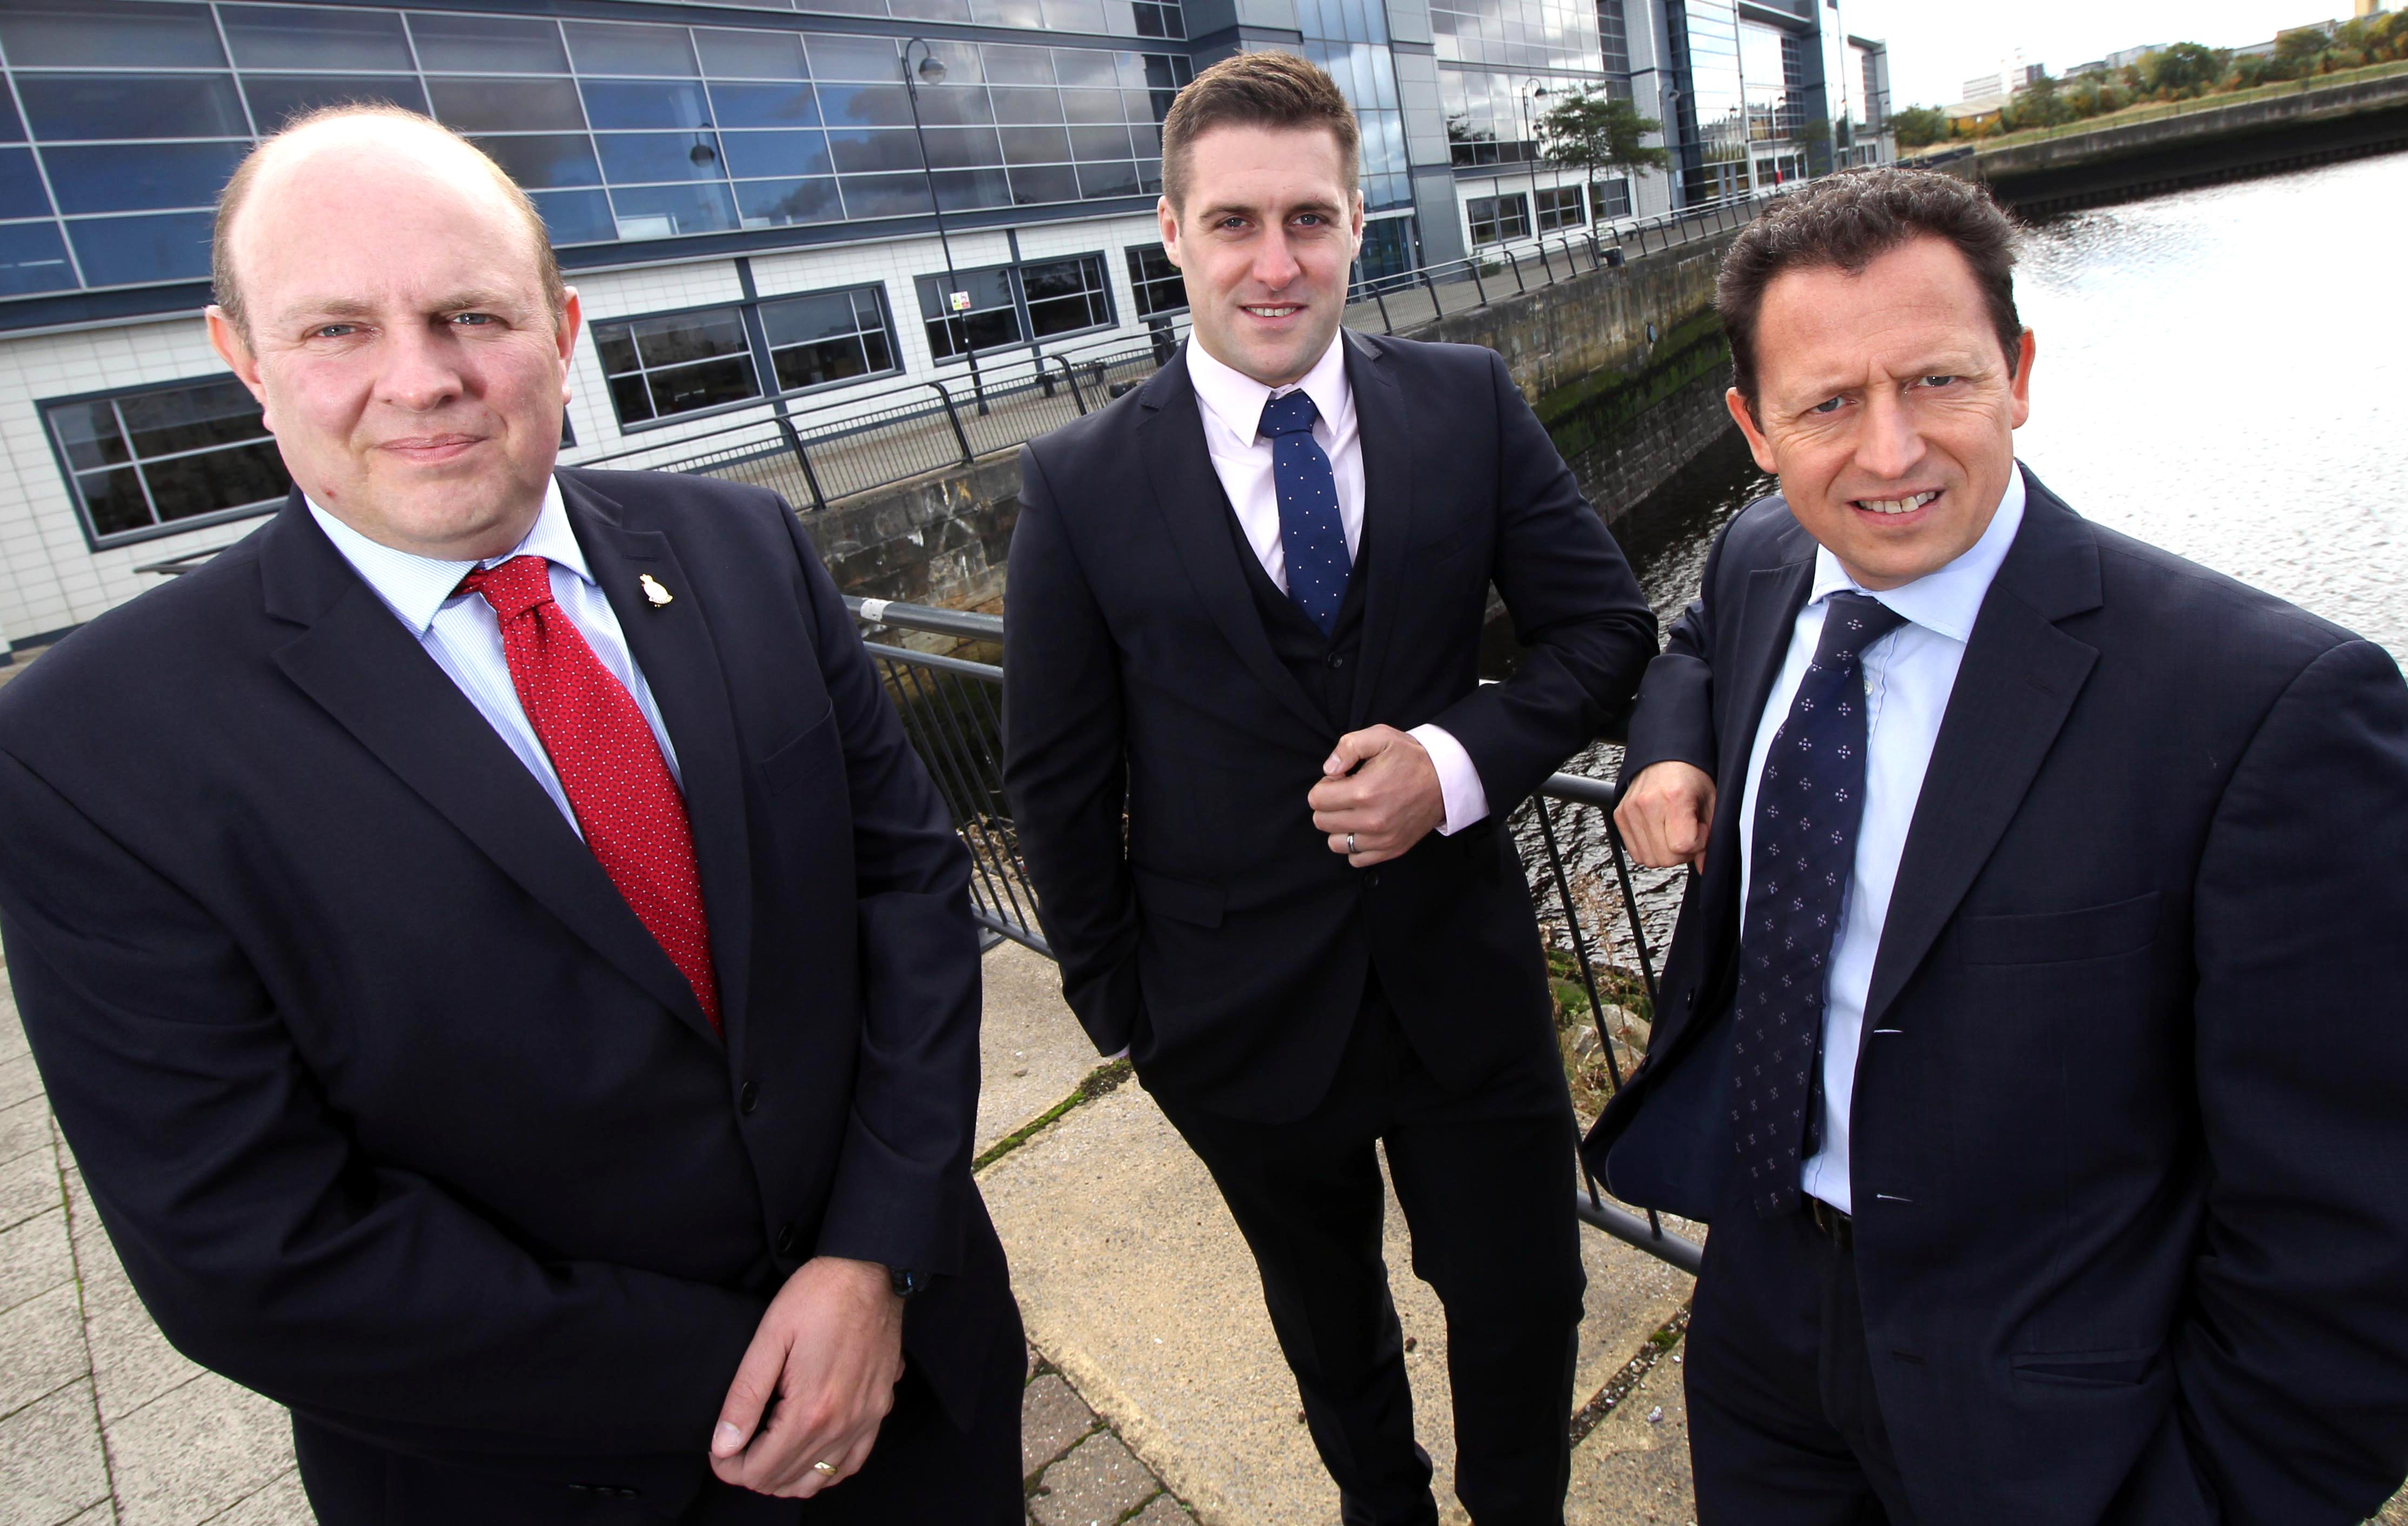 Aycliffe Landscape Firm's Hat-trick of Contracts